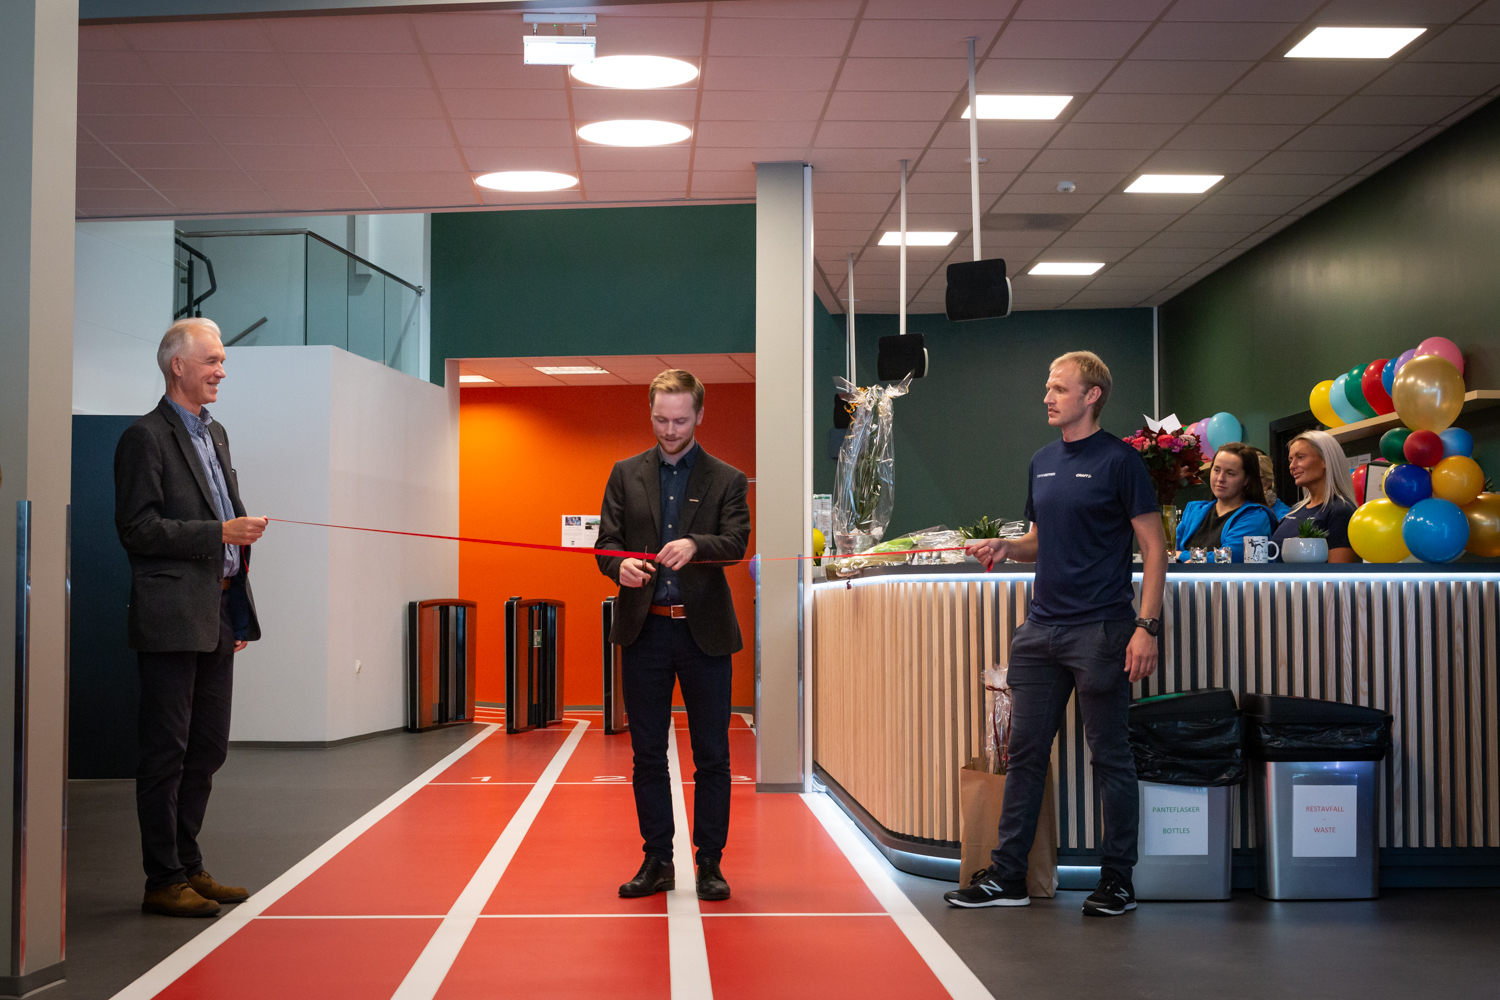 OFFICIAL OPENING. The Fantoft training center was opened after a 6 months renovation.